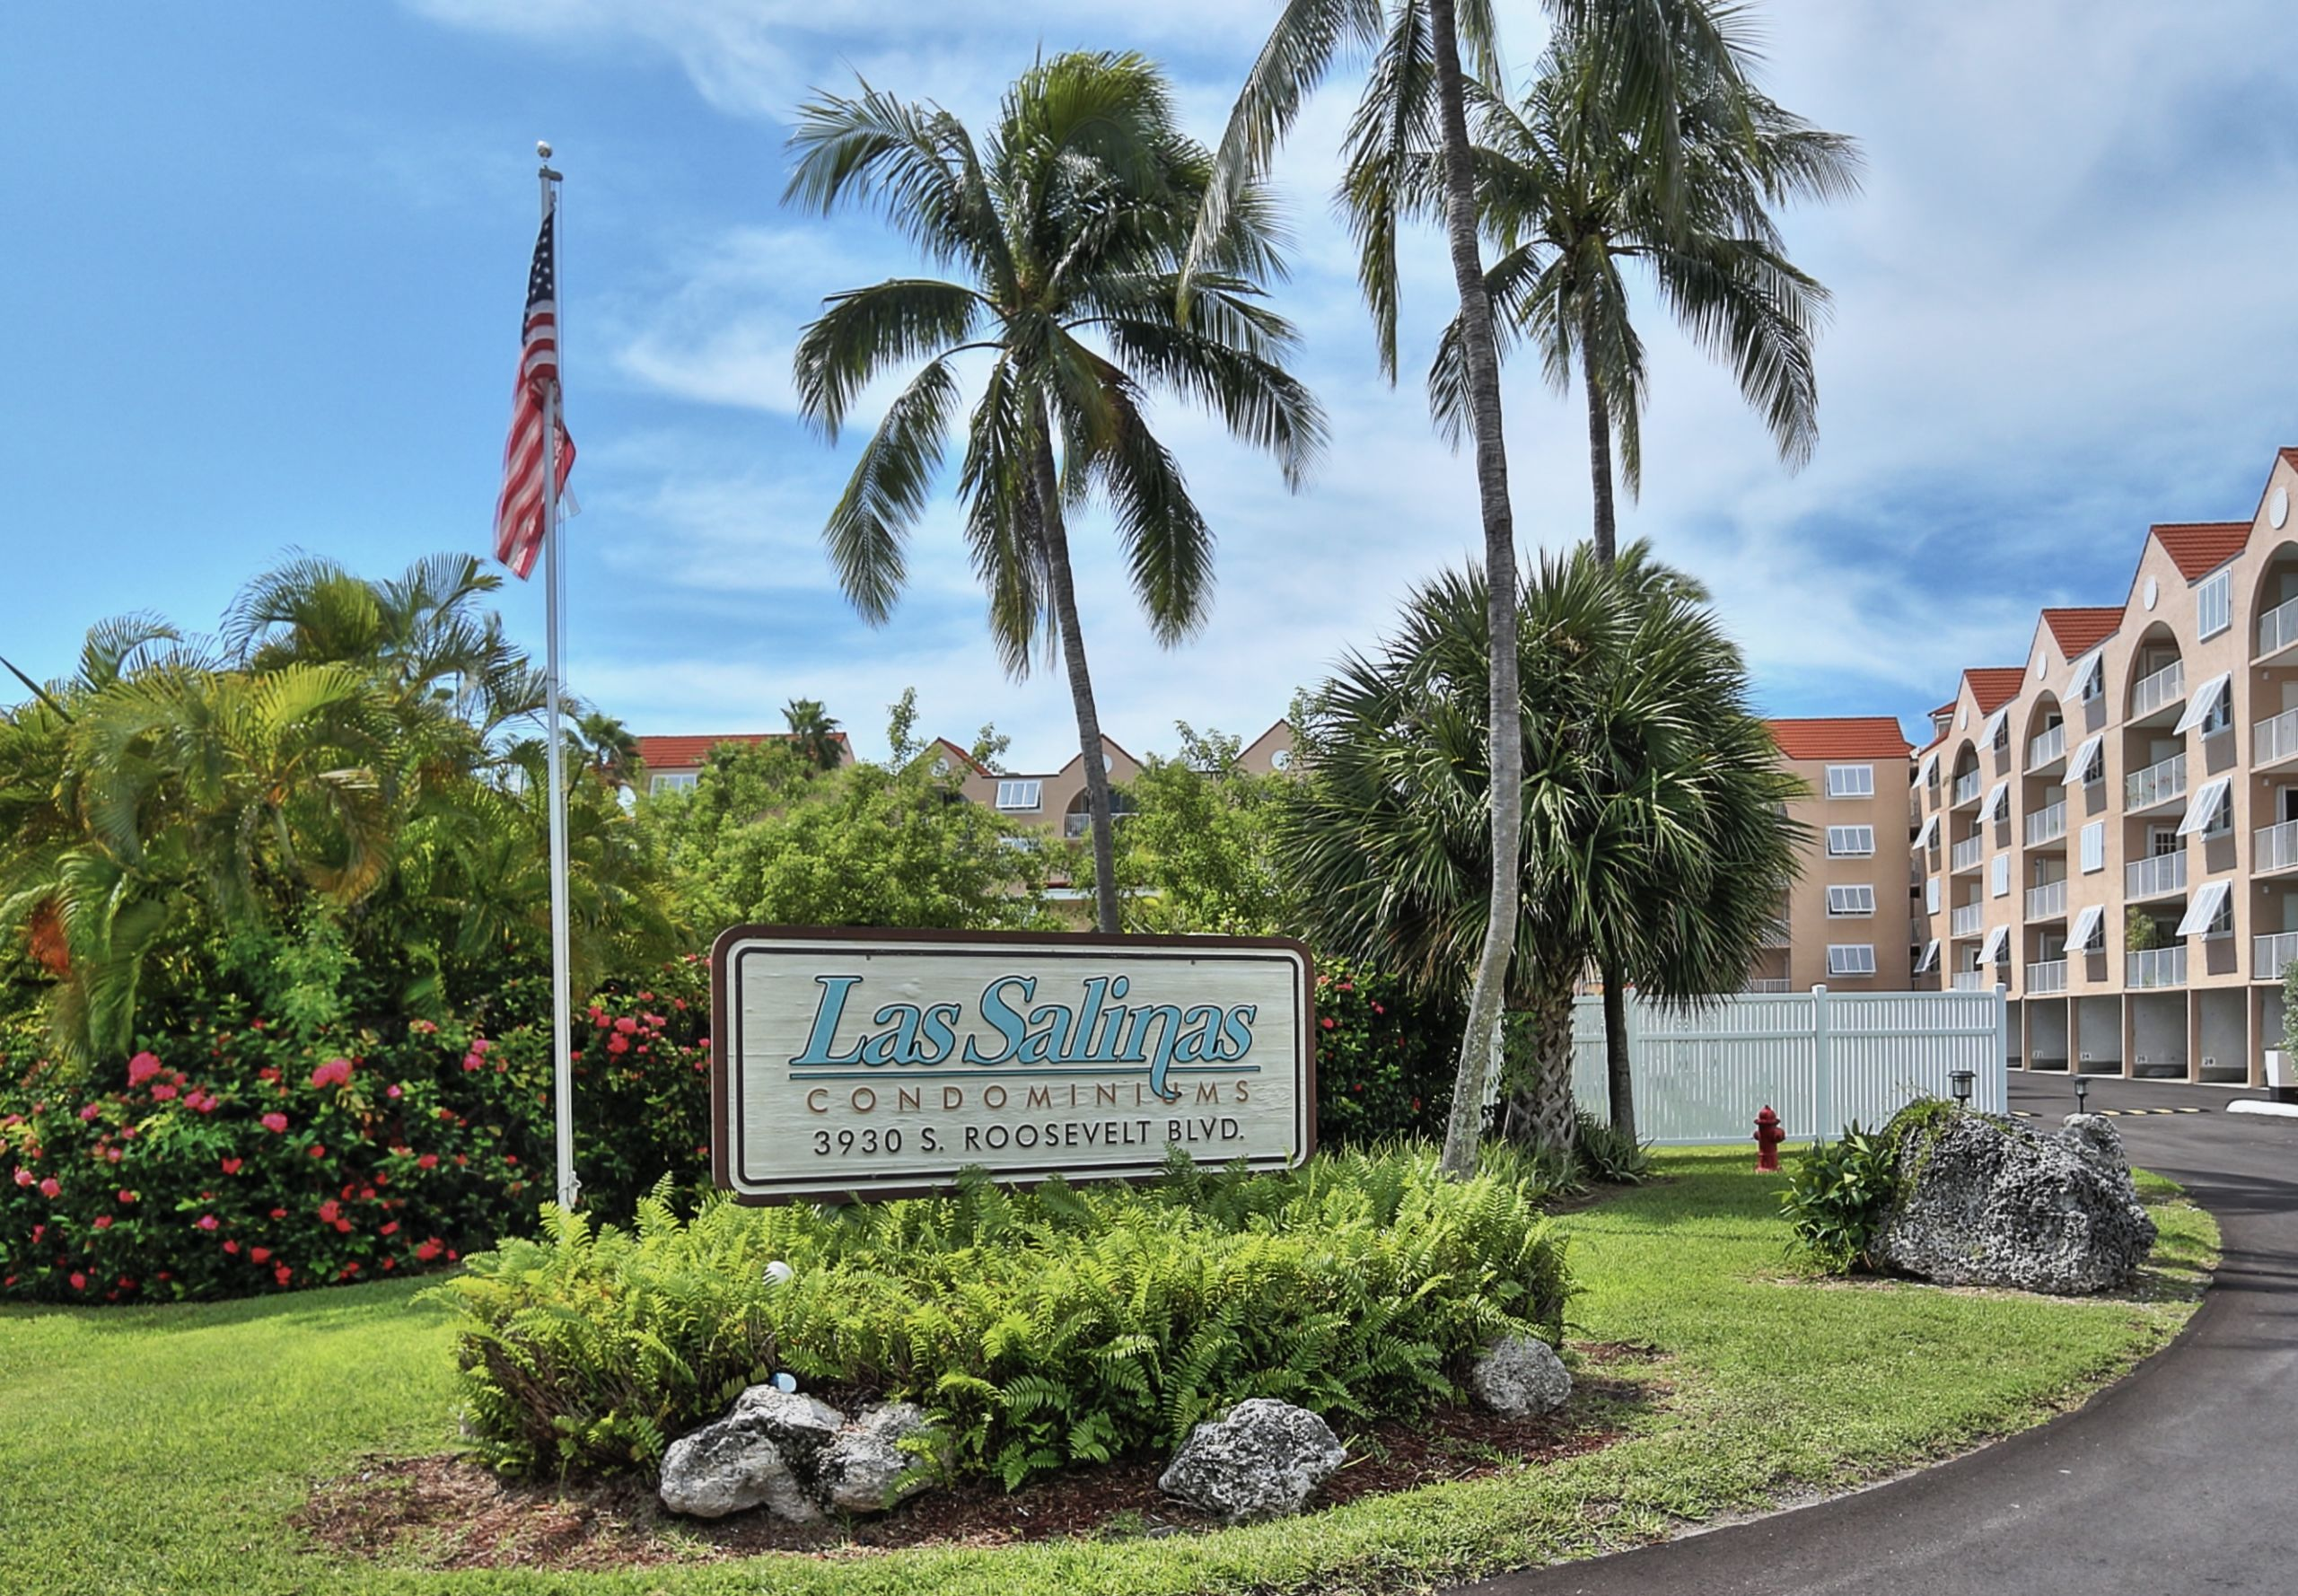 Just Listed for Only $342k - Affordable Key West Living